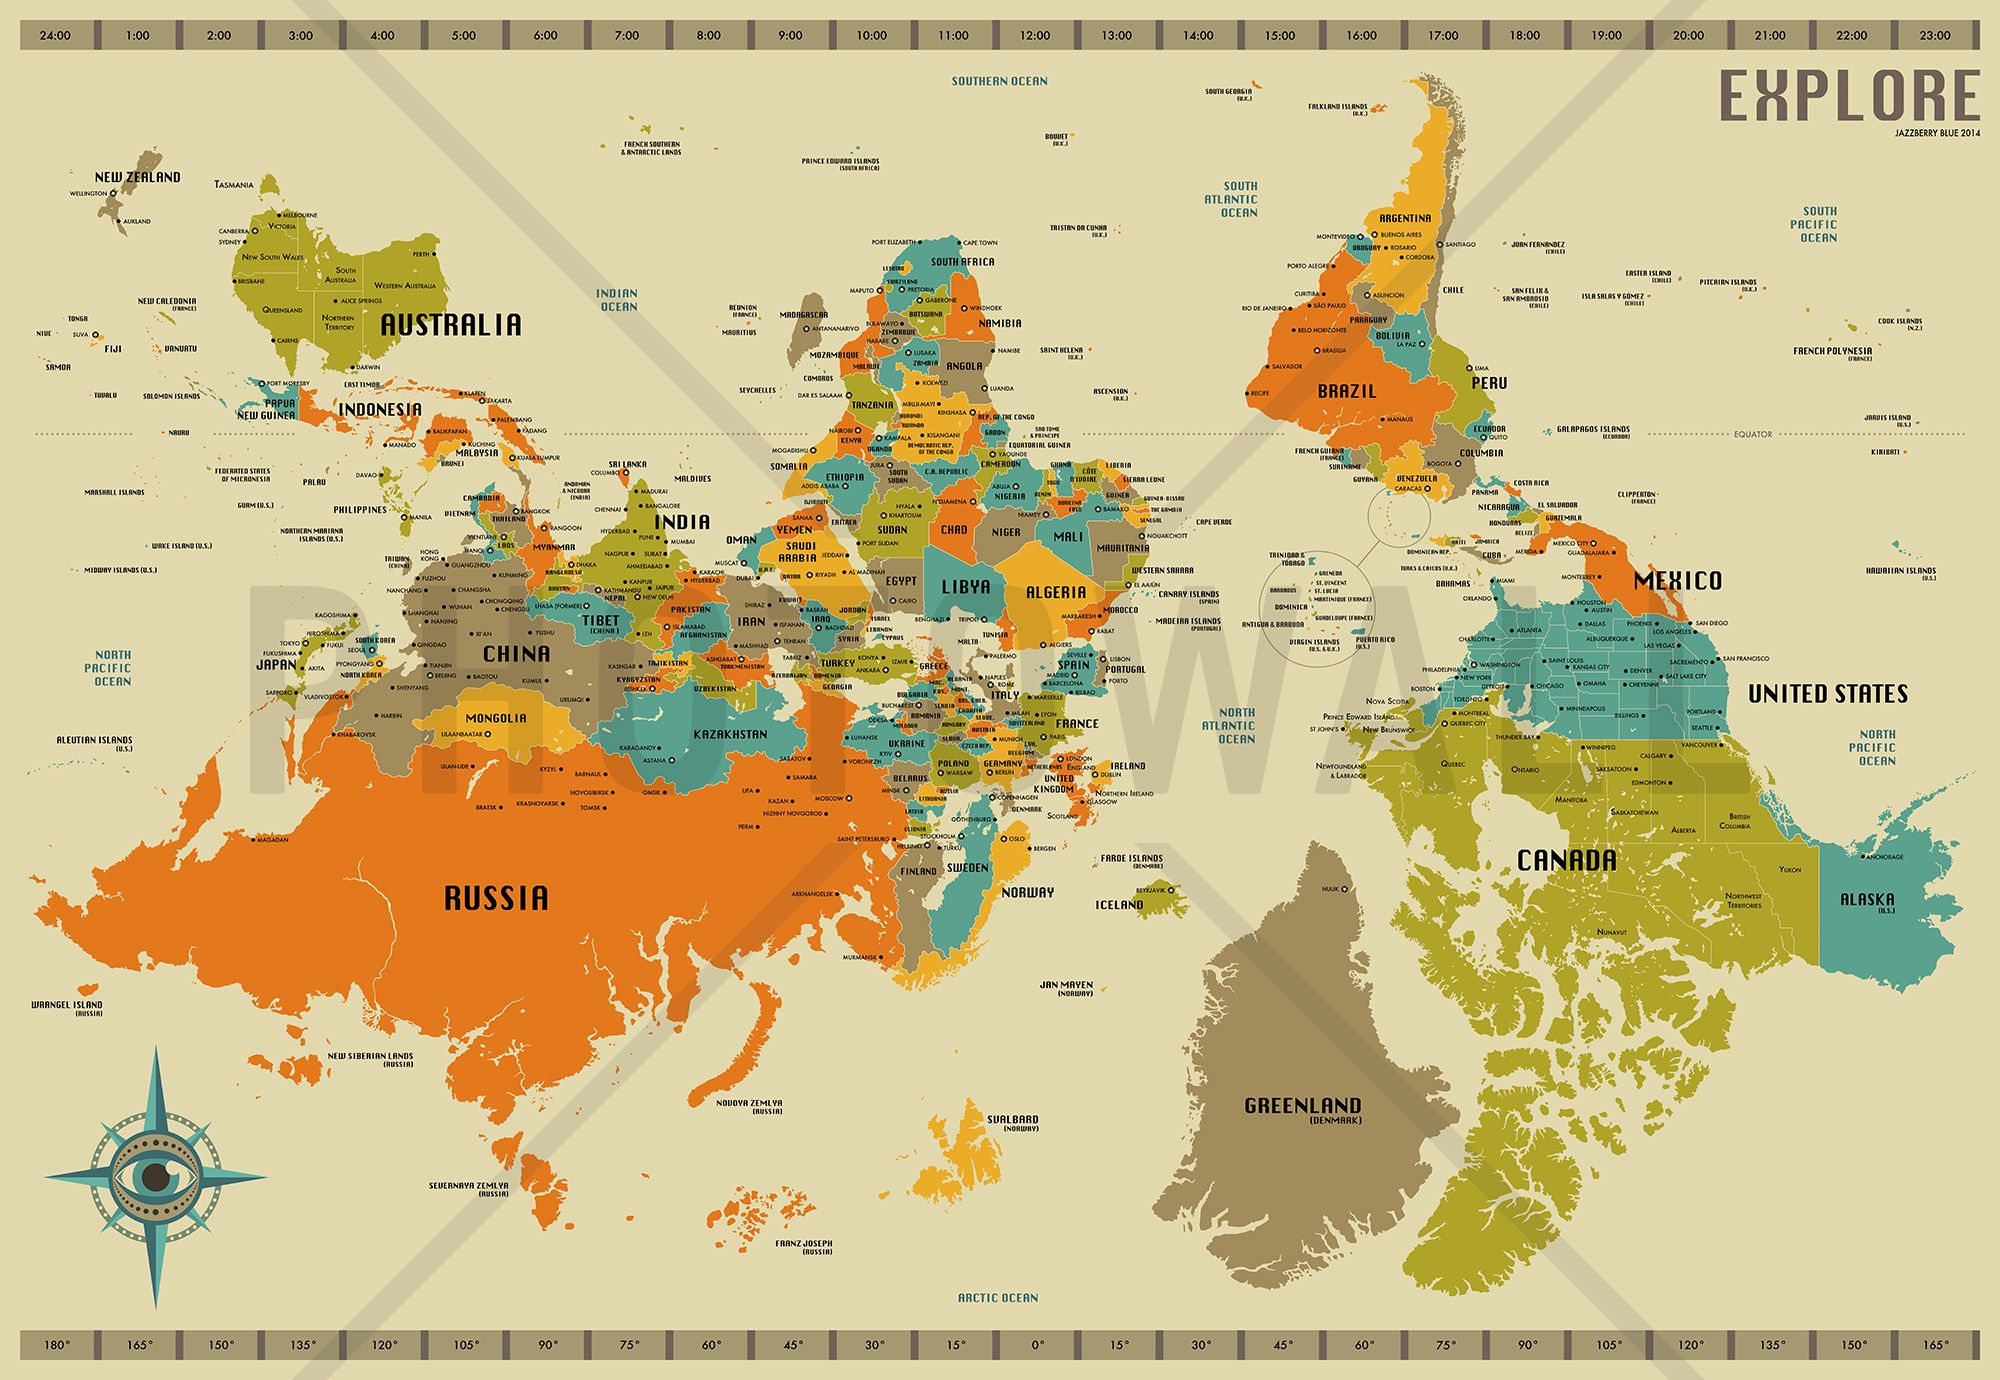 World Map Upside Down World Map Explore Upside Down   Wall Mural & Photo Wallpaper